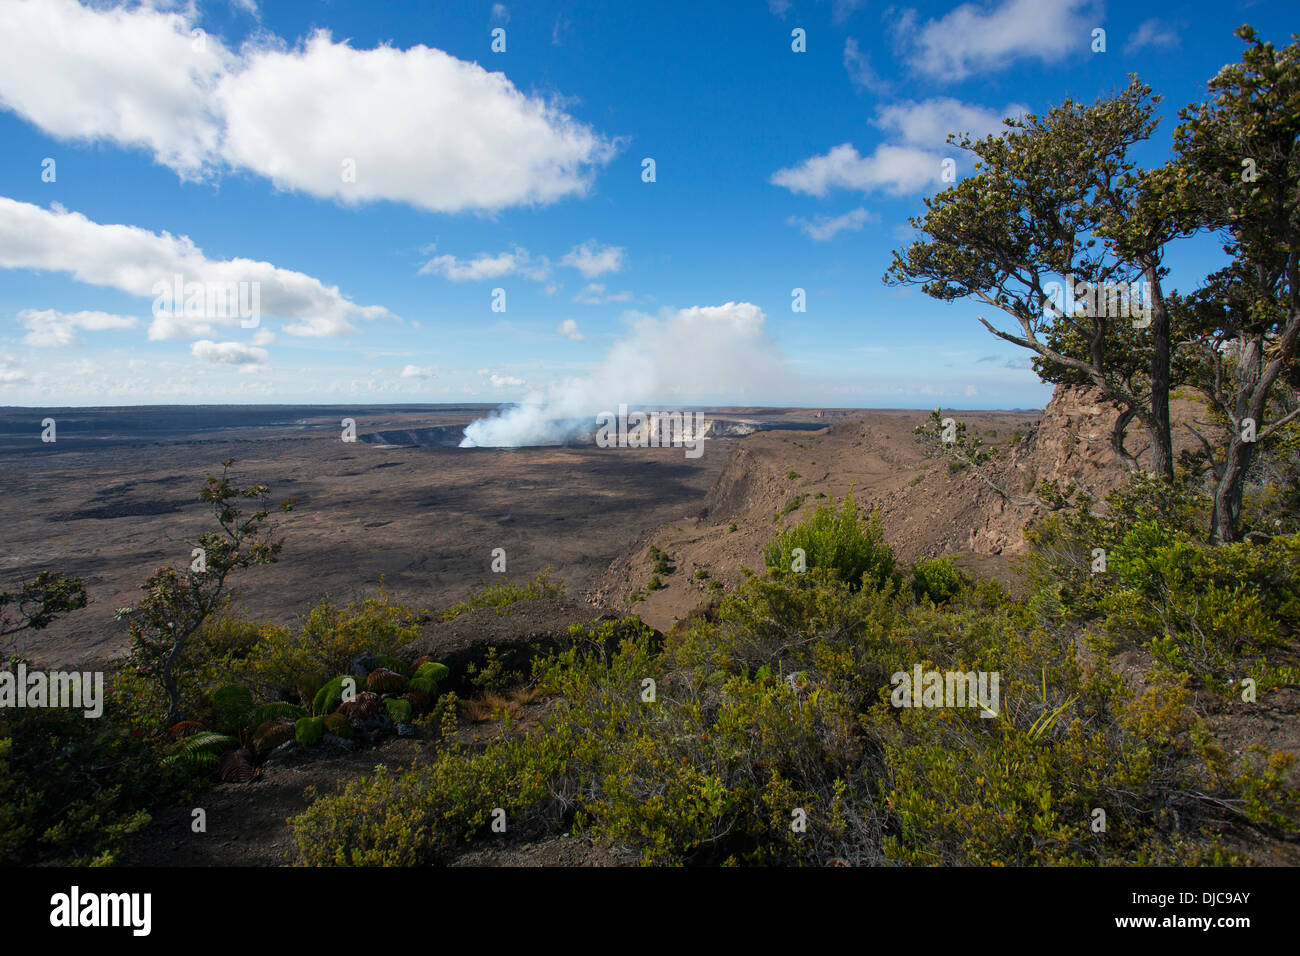 Halemaumau Crater, Kilauea Volcano, HVNP, Big Island of Hawaii - Stock Image